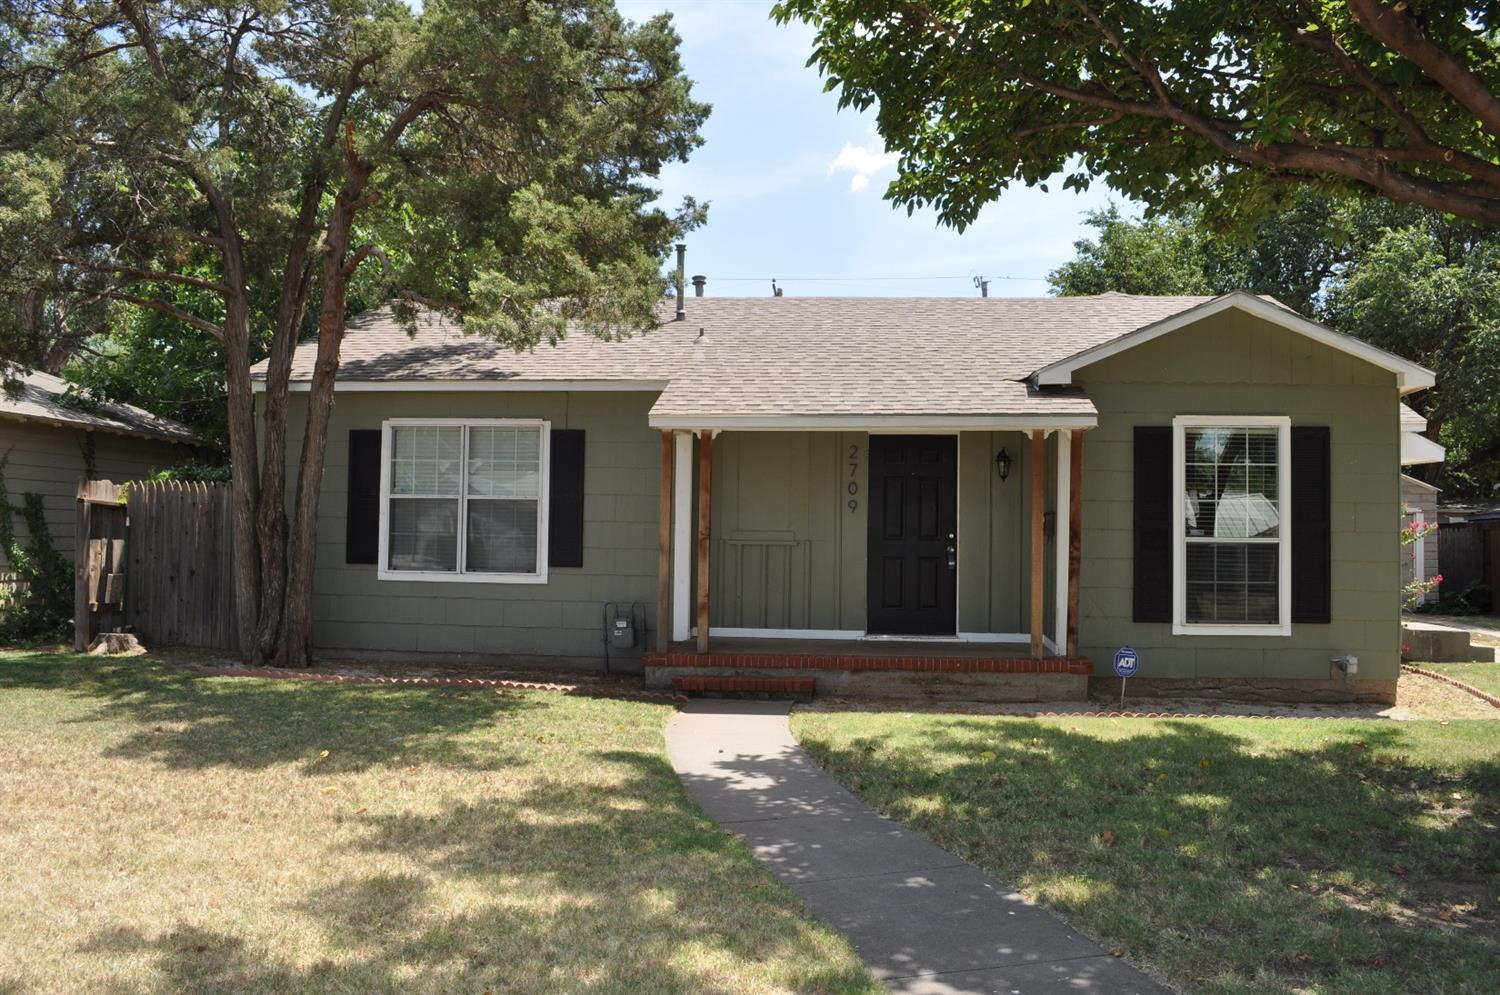 2709 28th, Lubbock in Lubbock County, TX 79410 Home for Sale